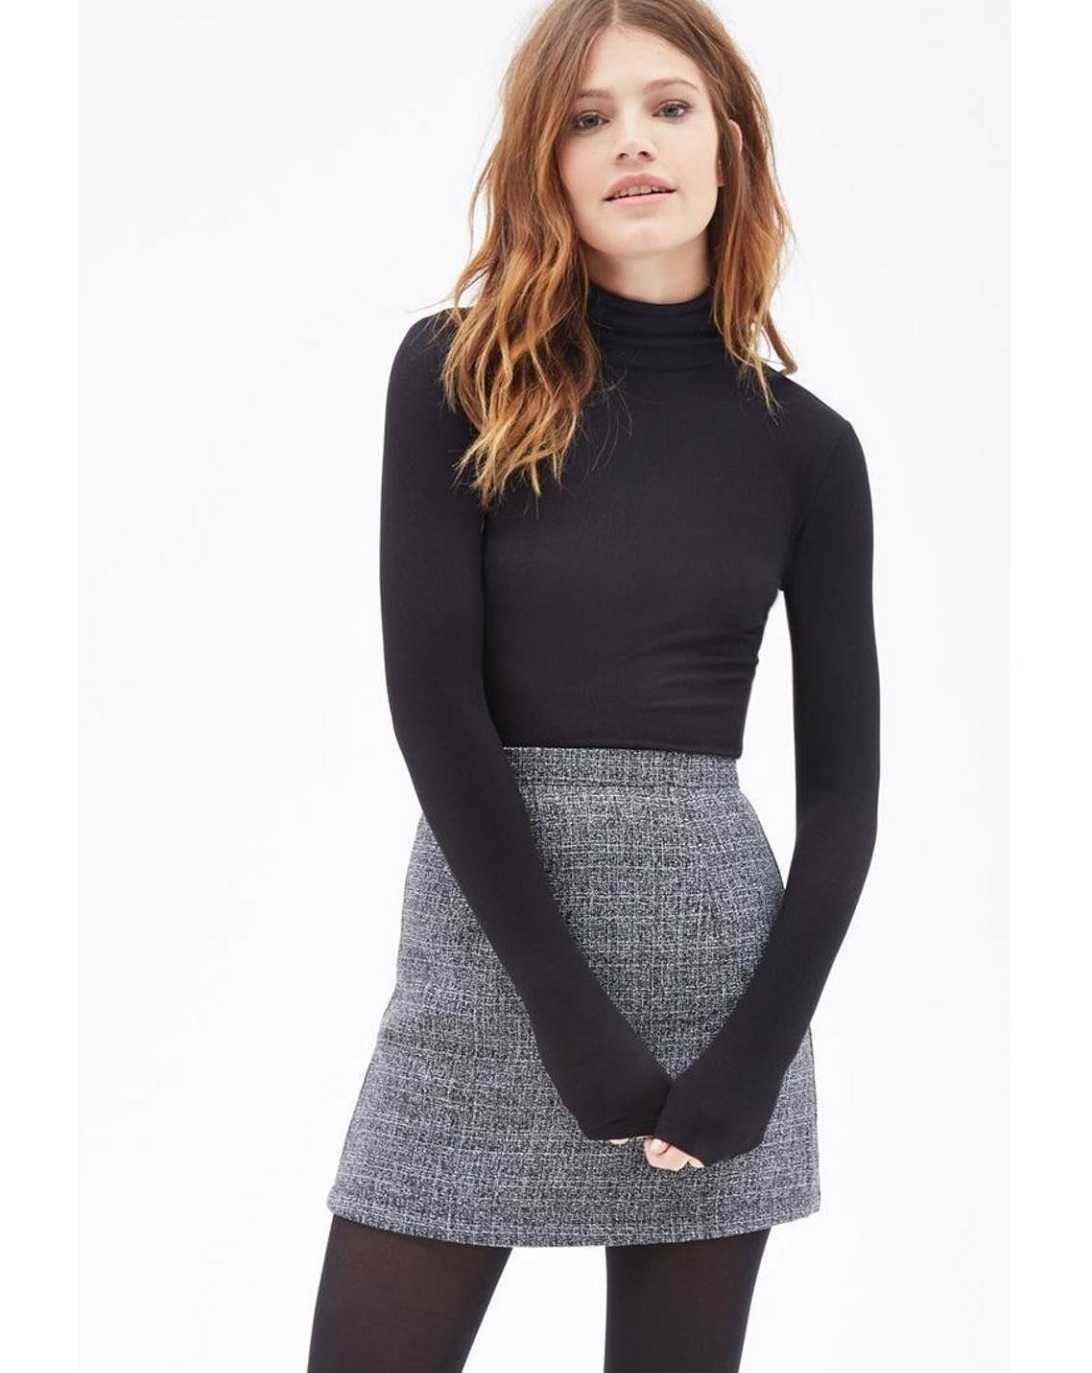 Turtleneck Winter Essentials